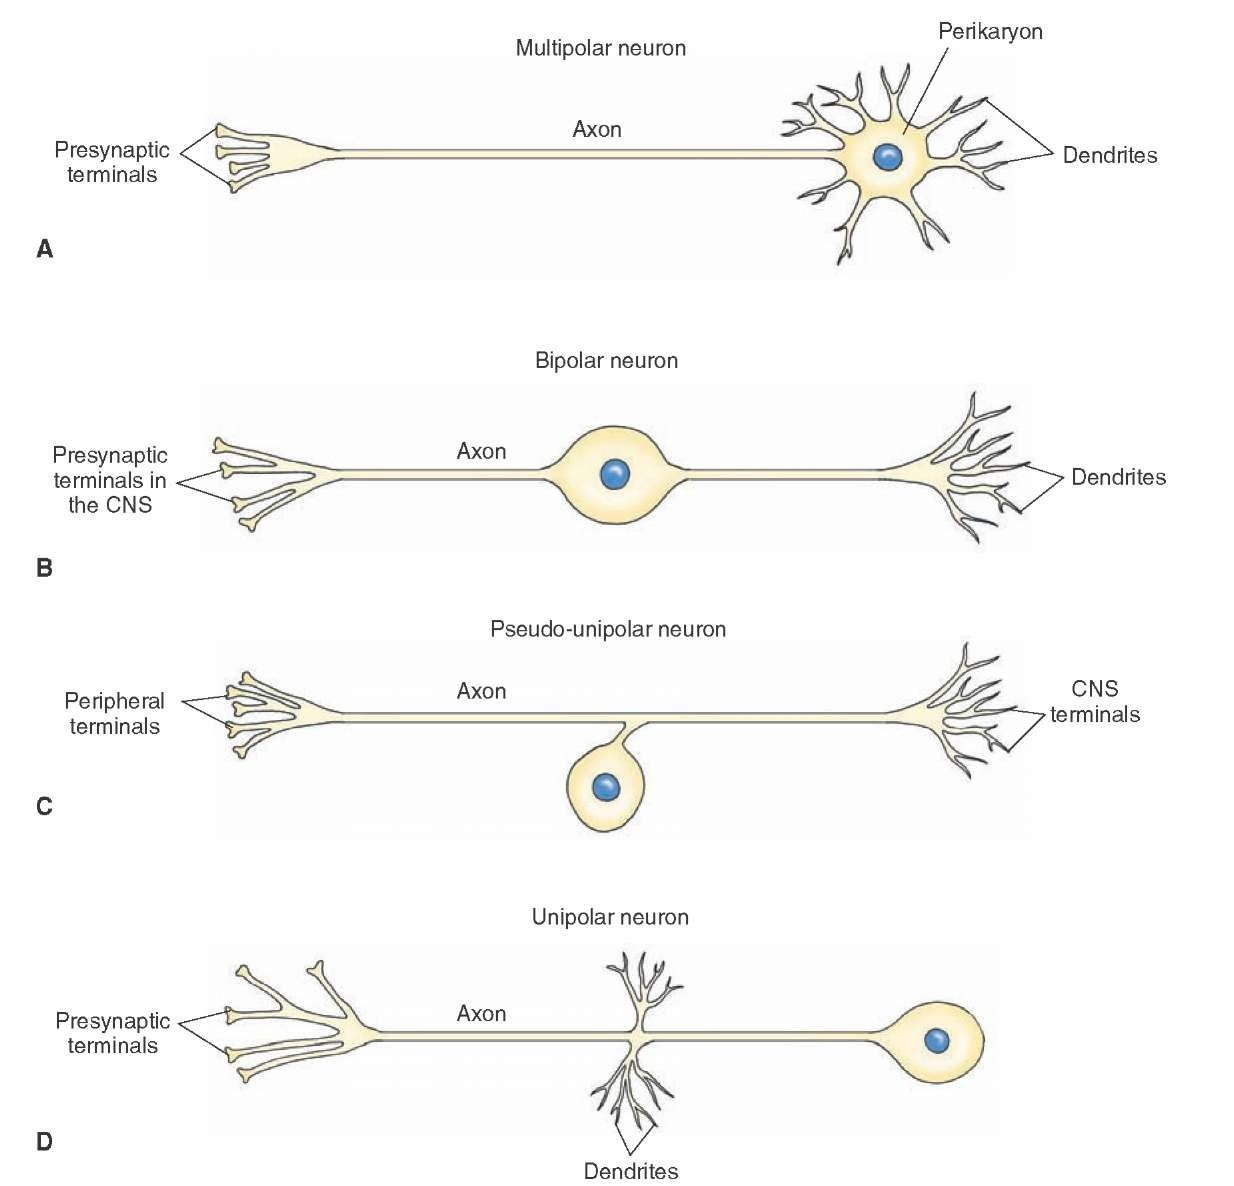 multipolar neuron diagram labeled wiring trailer plug 7 pin different types of neurons a b